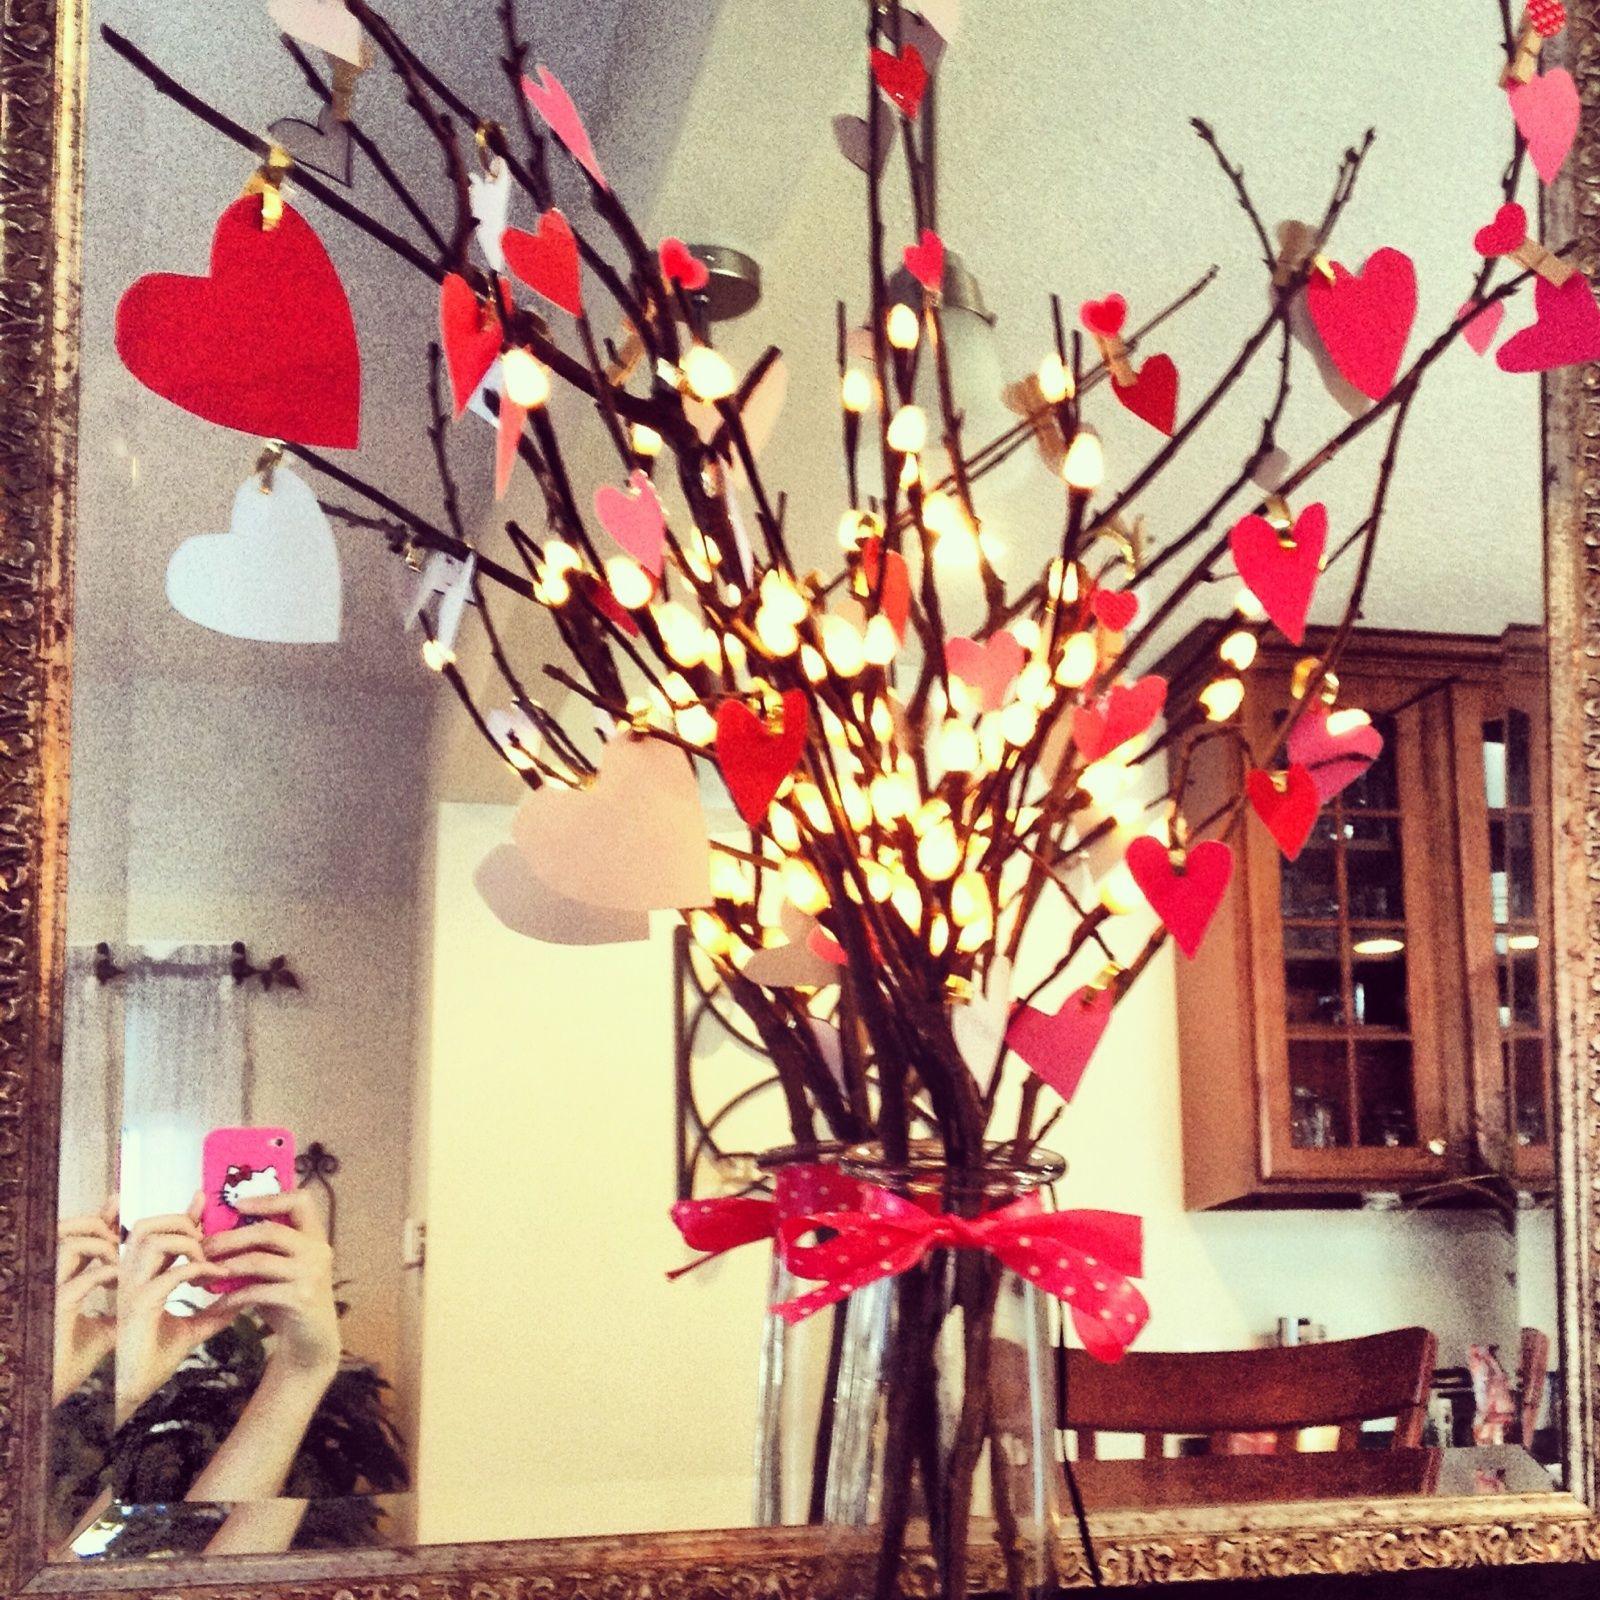 the greatest 30 diy decoration ideas for unforgettable valentine's